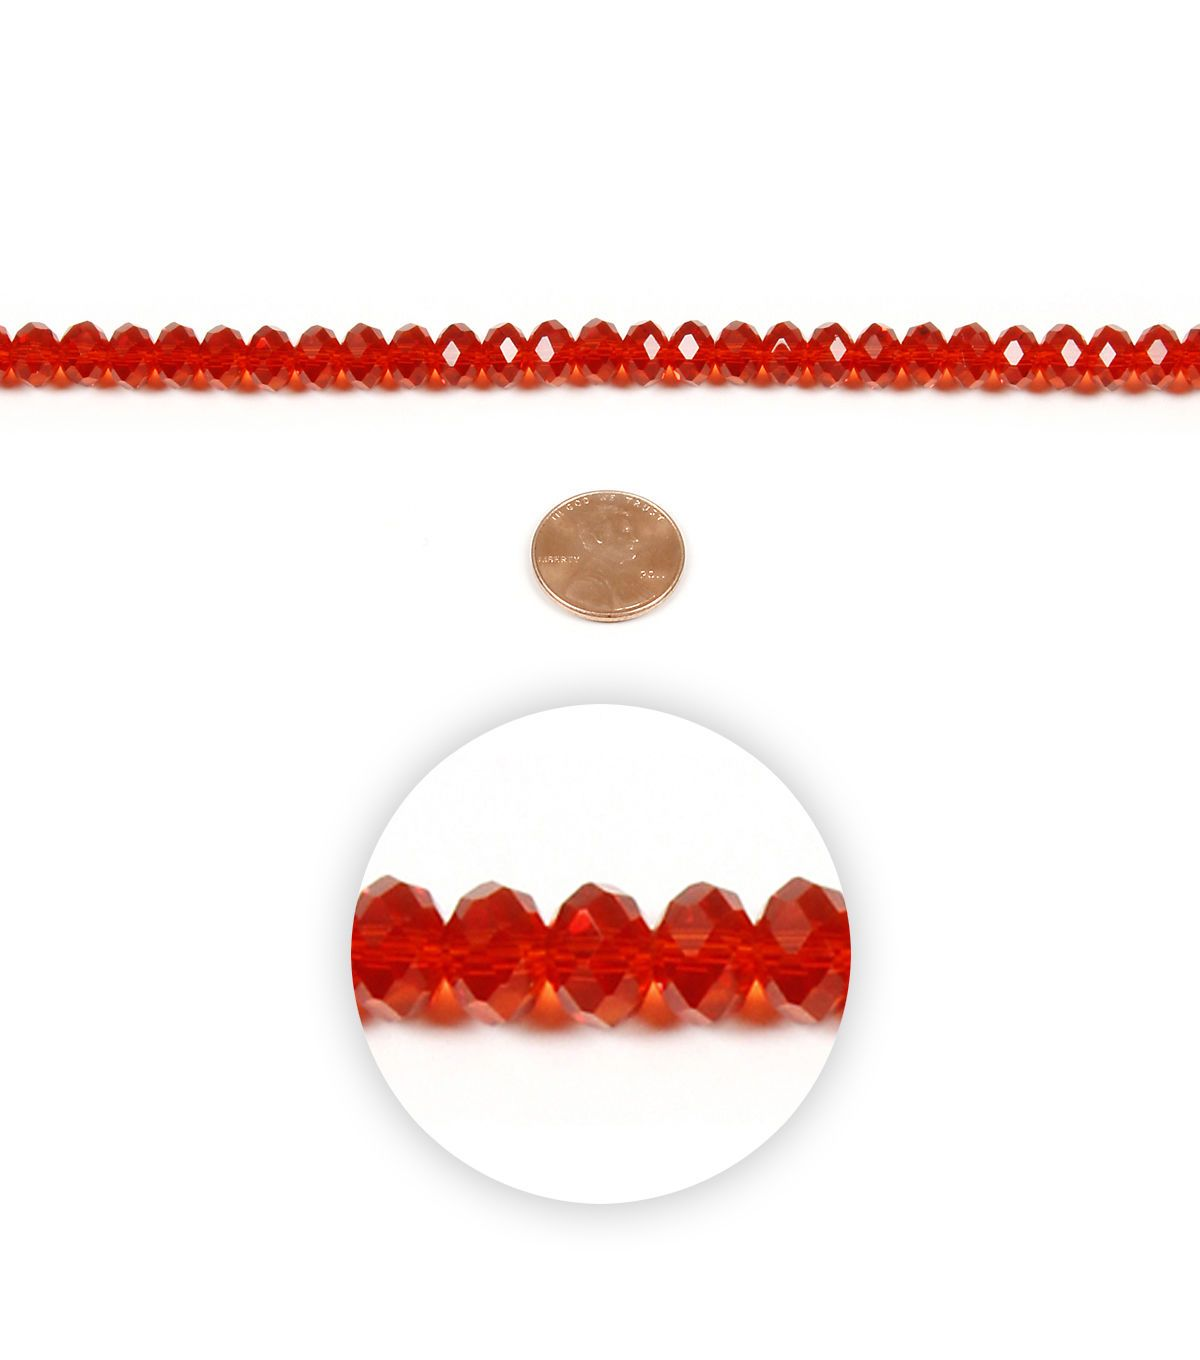 Strand Rondell Crystal Bead Red